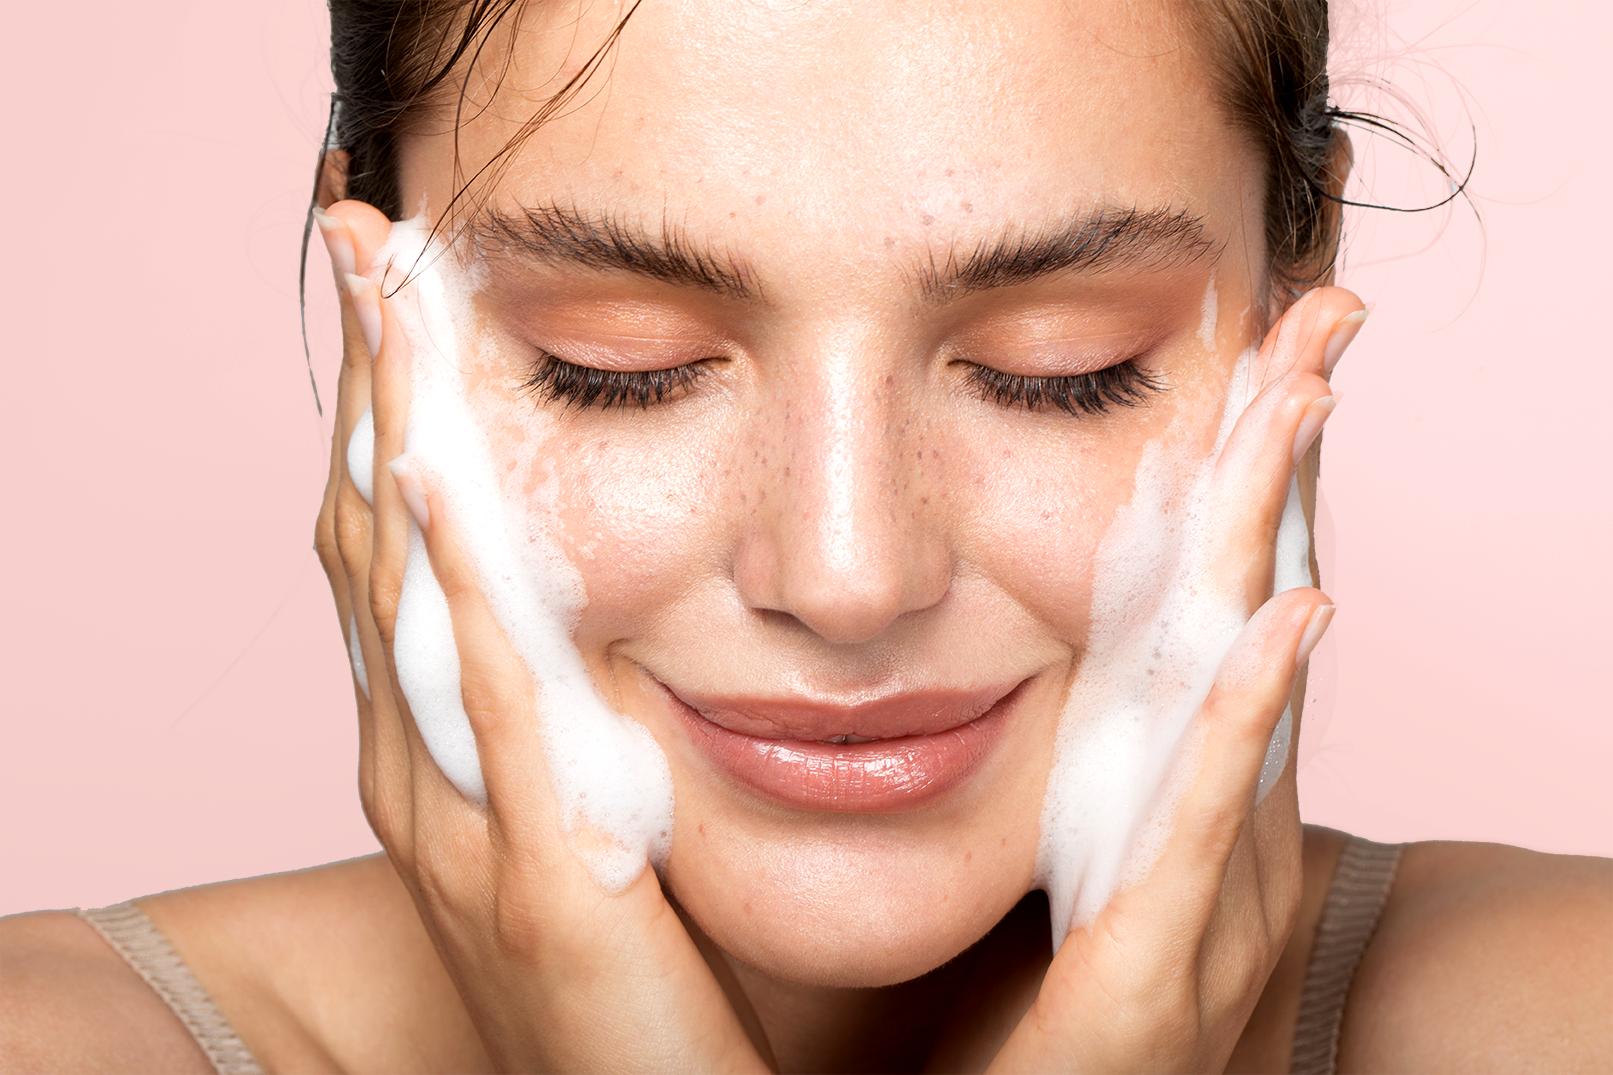 How to Build the Best Skincare Routine - Correct Order of Skincare Products